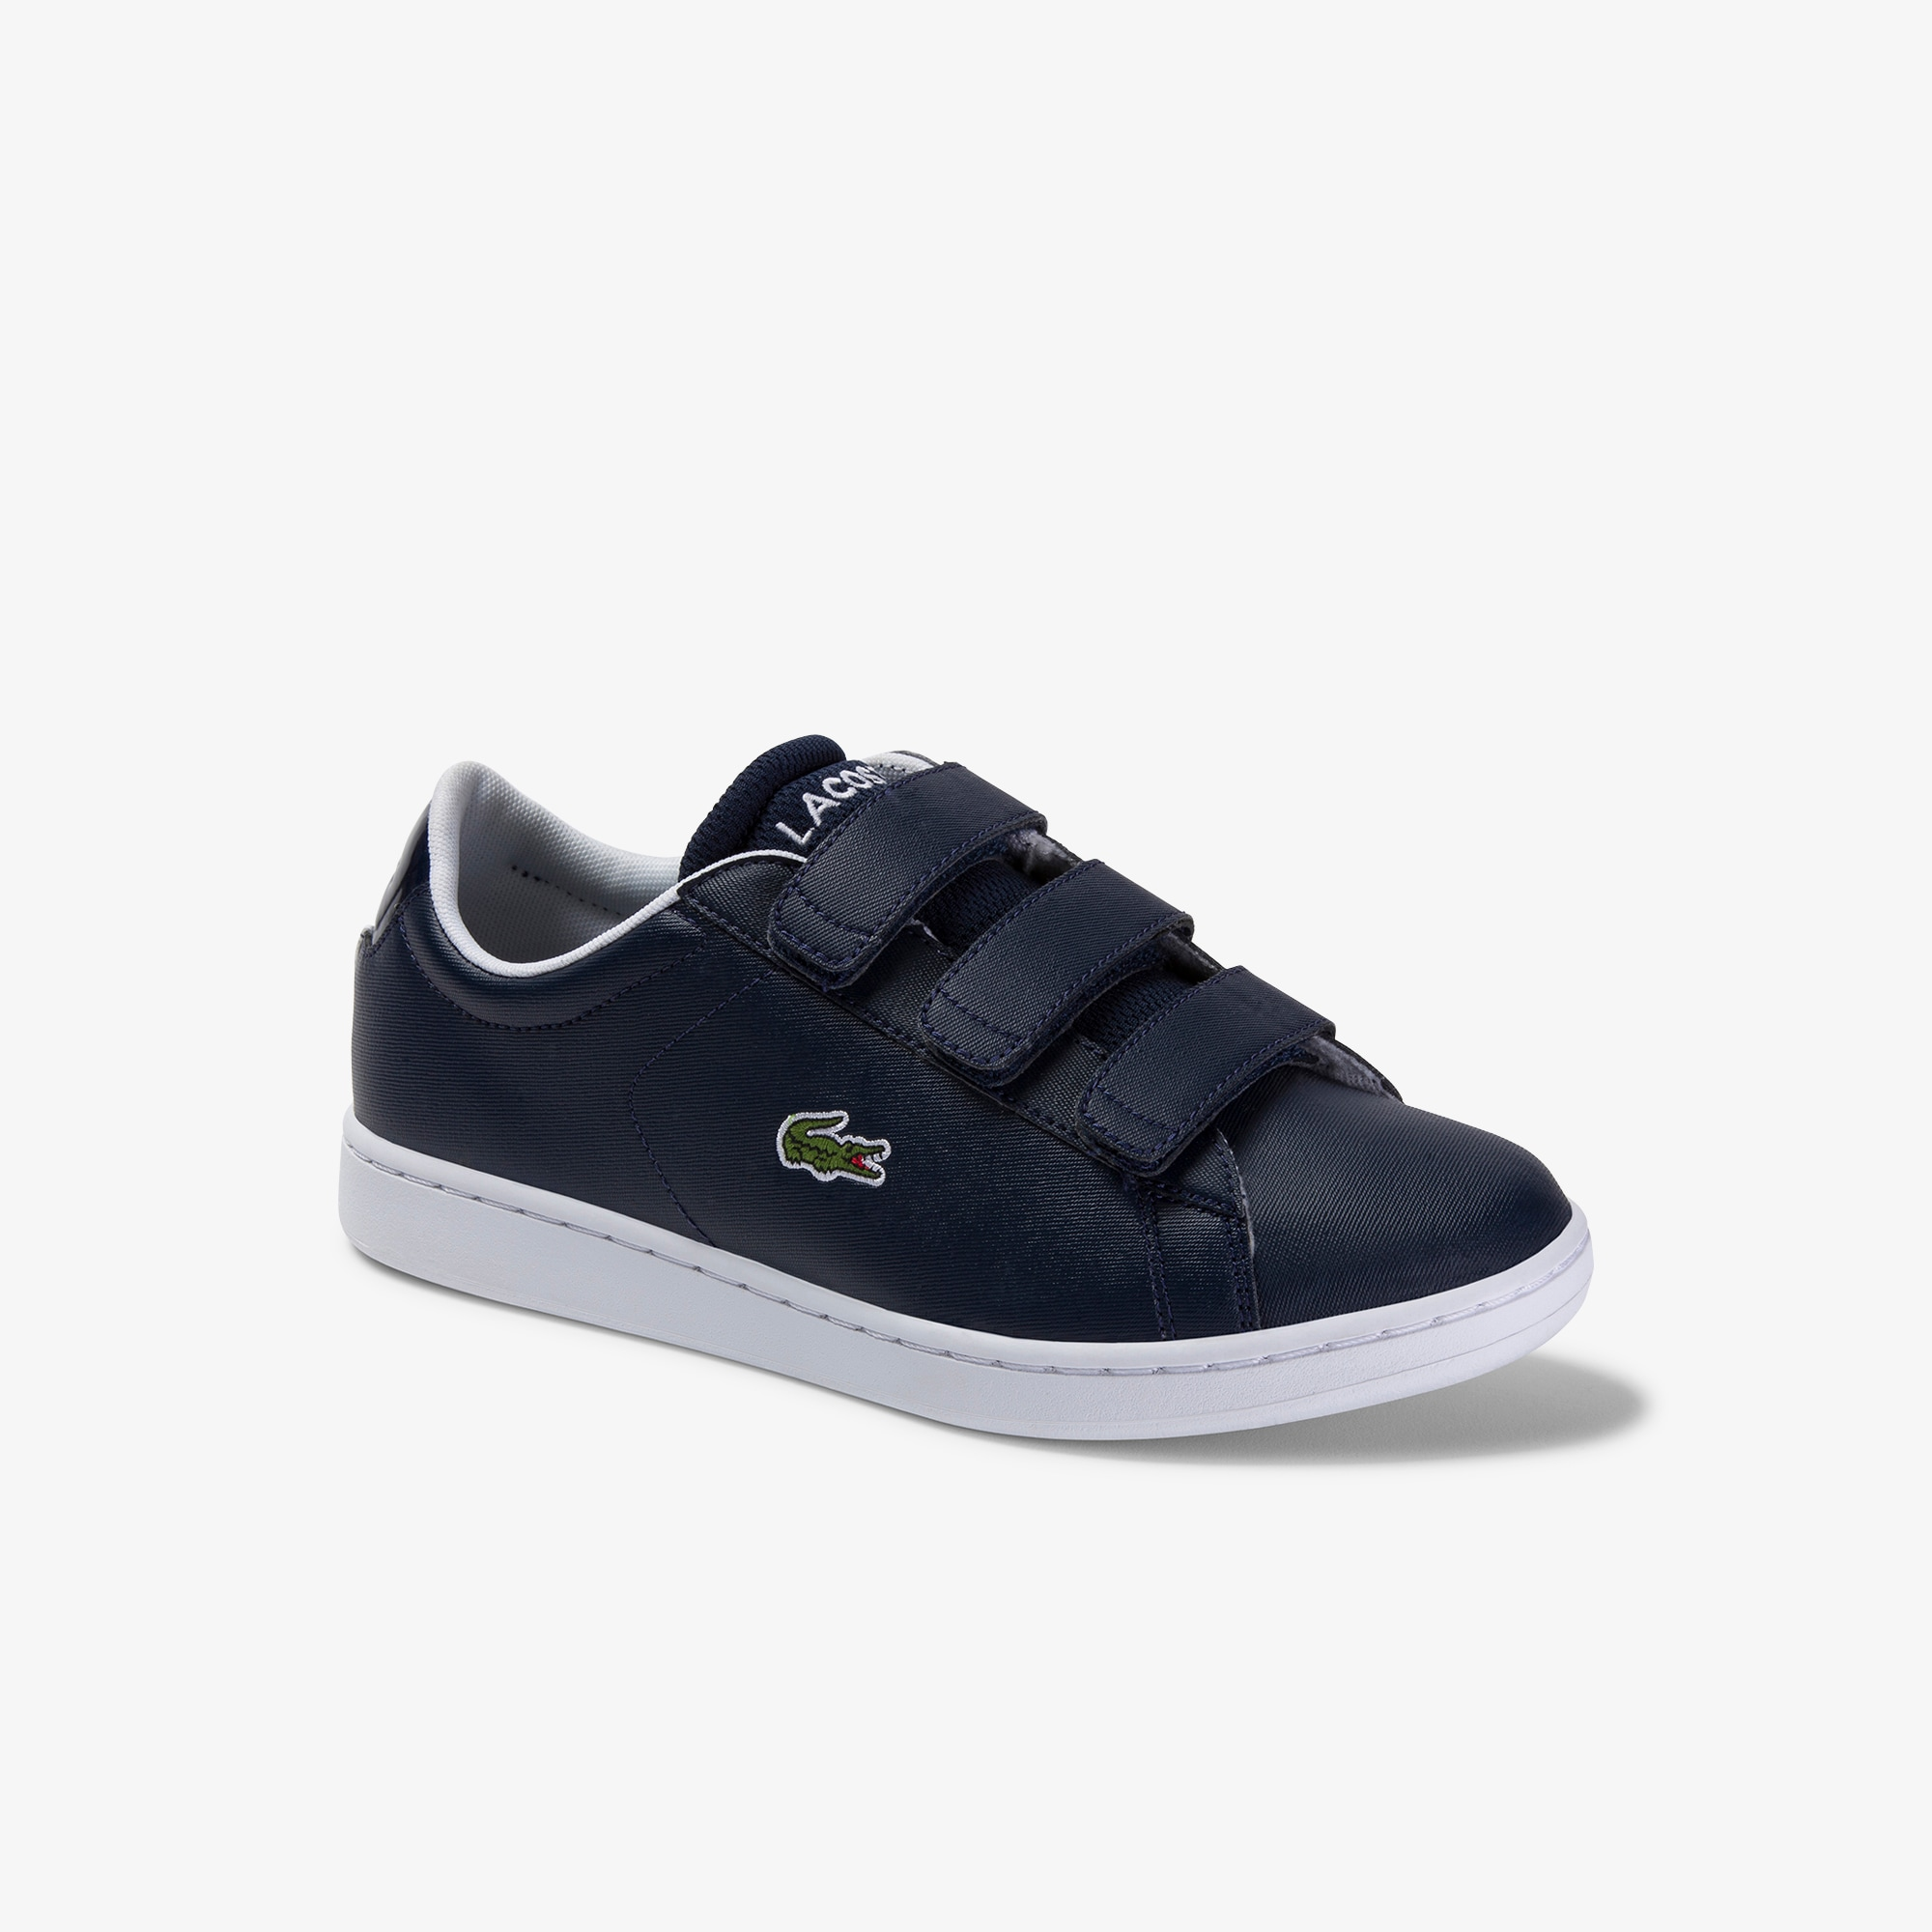 Junior Strap-Sneakers CARNABY EVO aus Synthetik